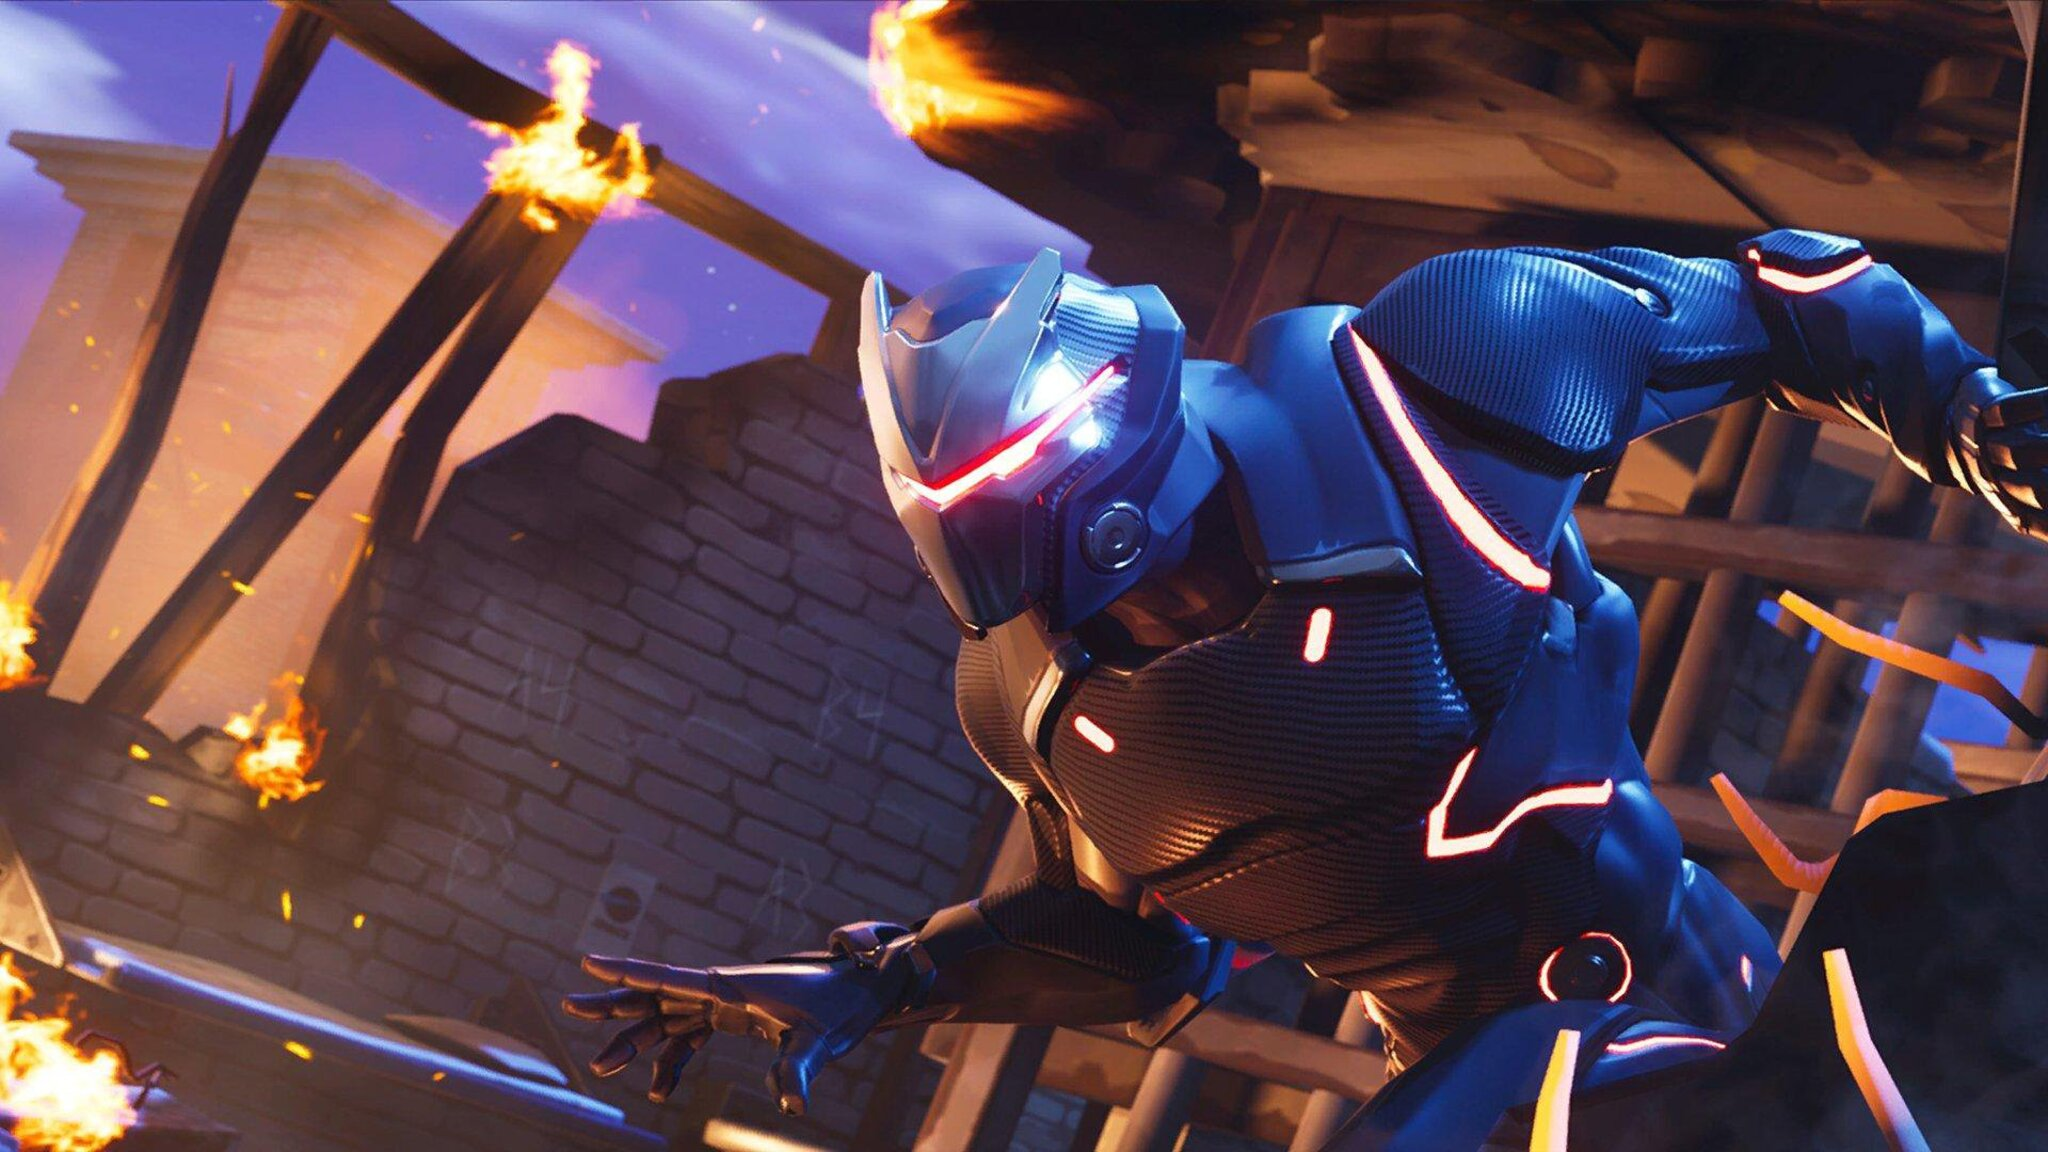 2048x1152 Fortnite Omega 2048x1152 Resolution Hd 4k Hot Trending Now